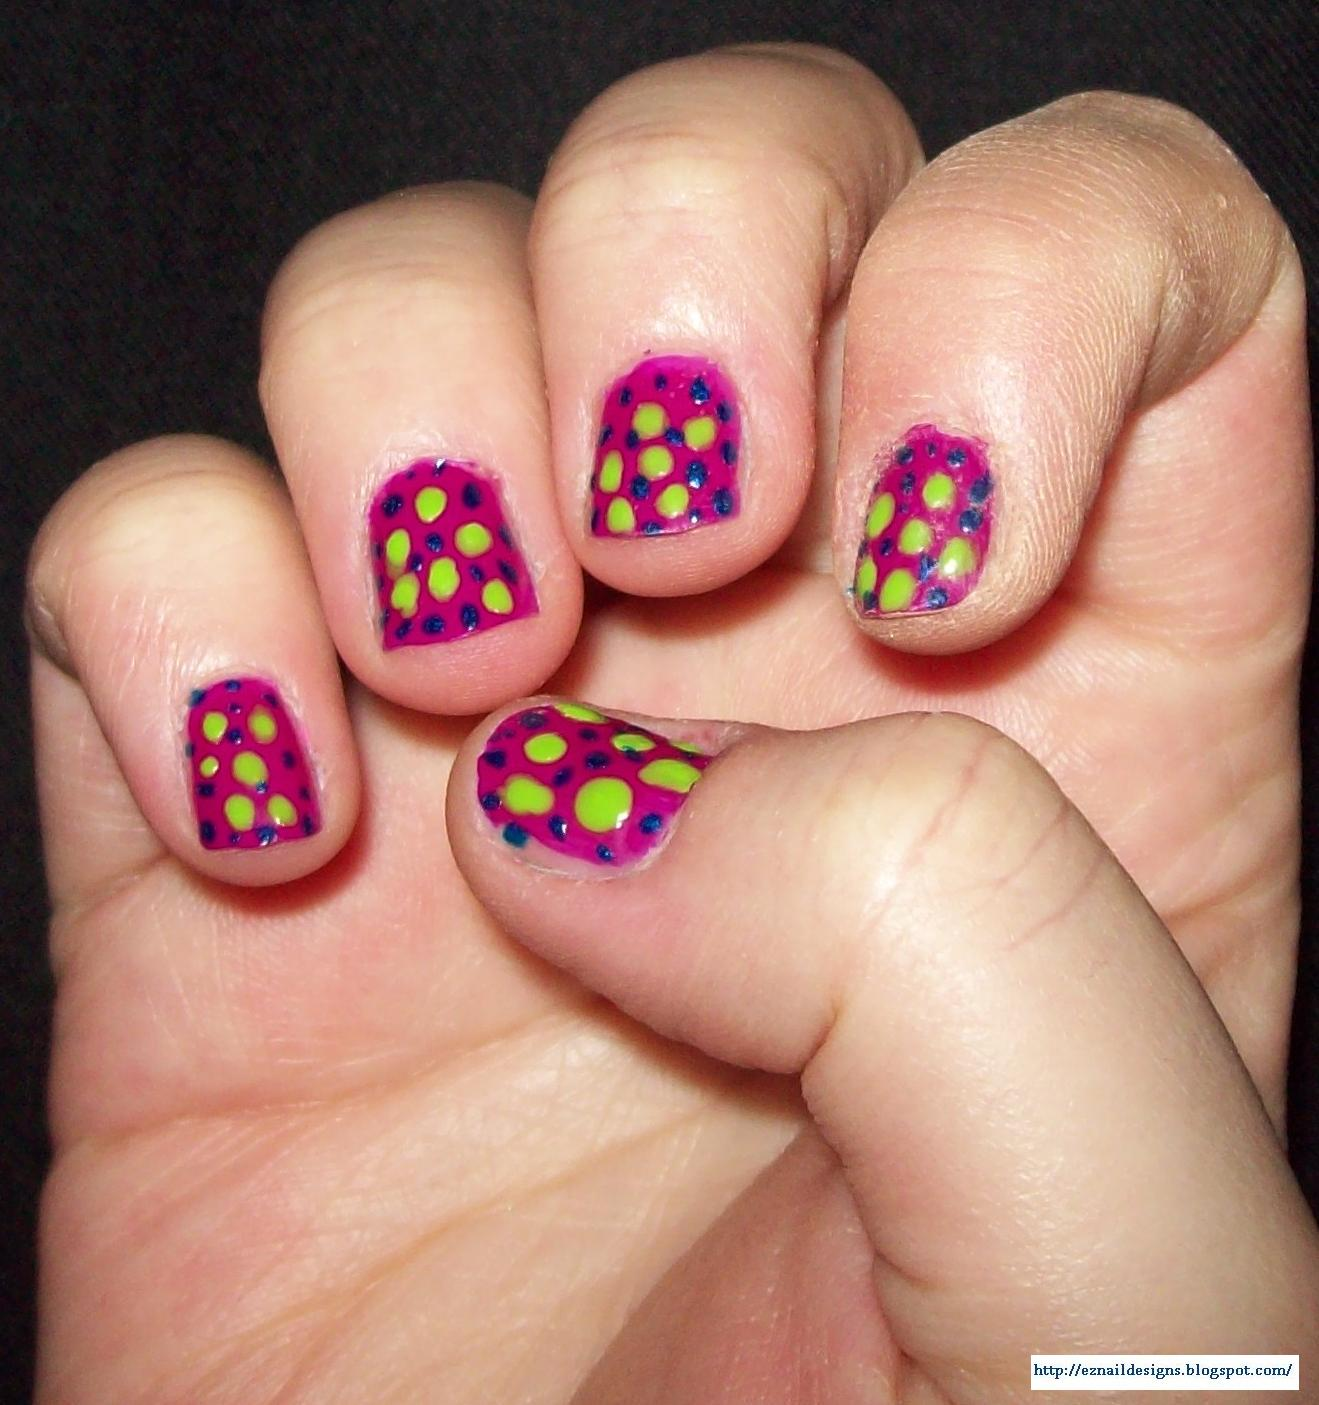 EZ Nail Designs: Polka Dot Nail Design